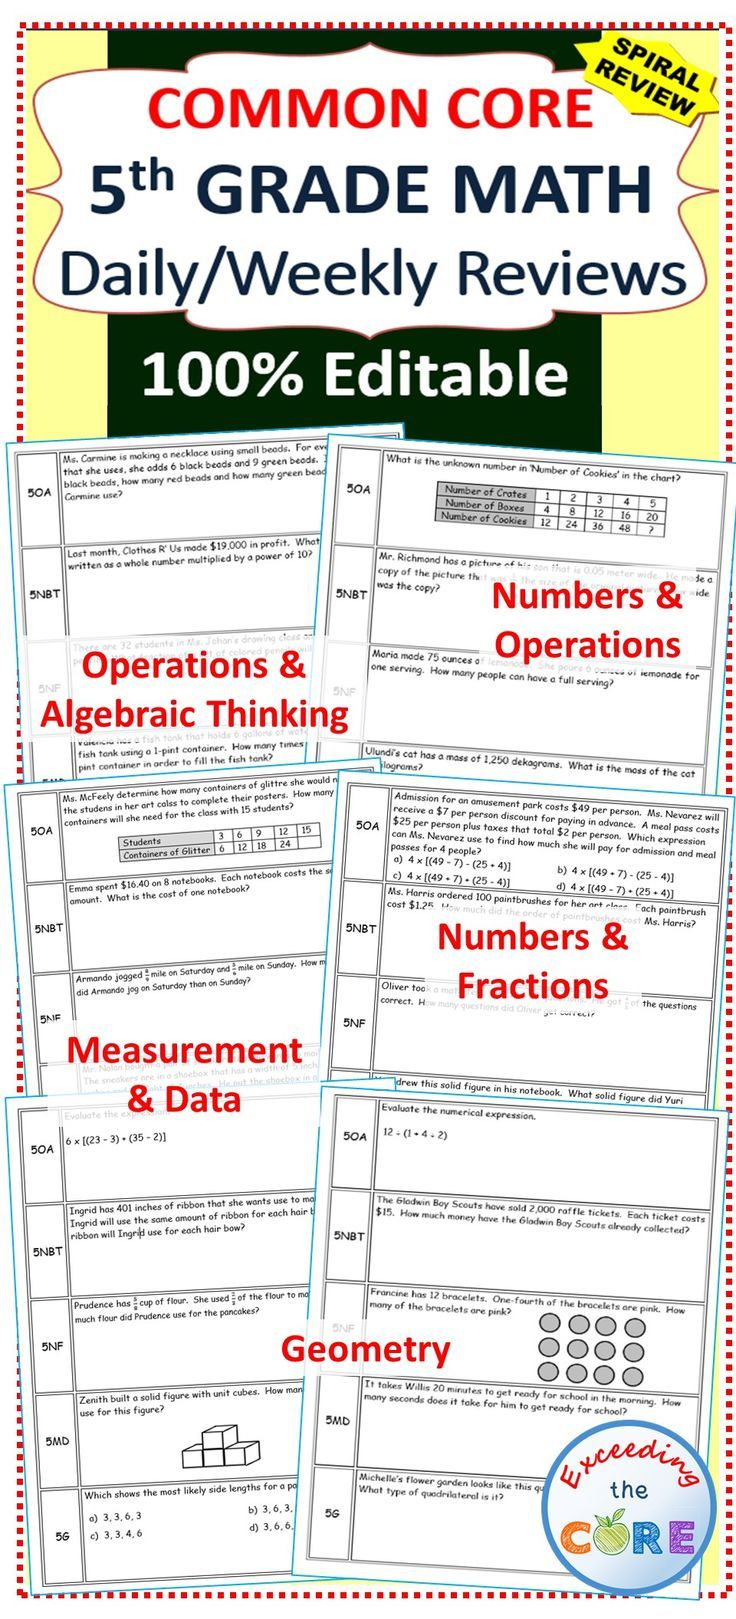 3rd grade common core math review sheets